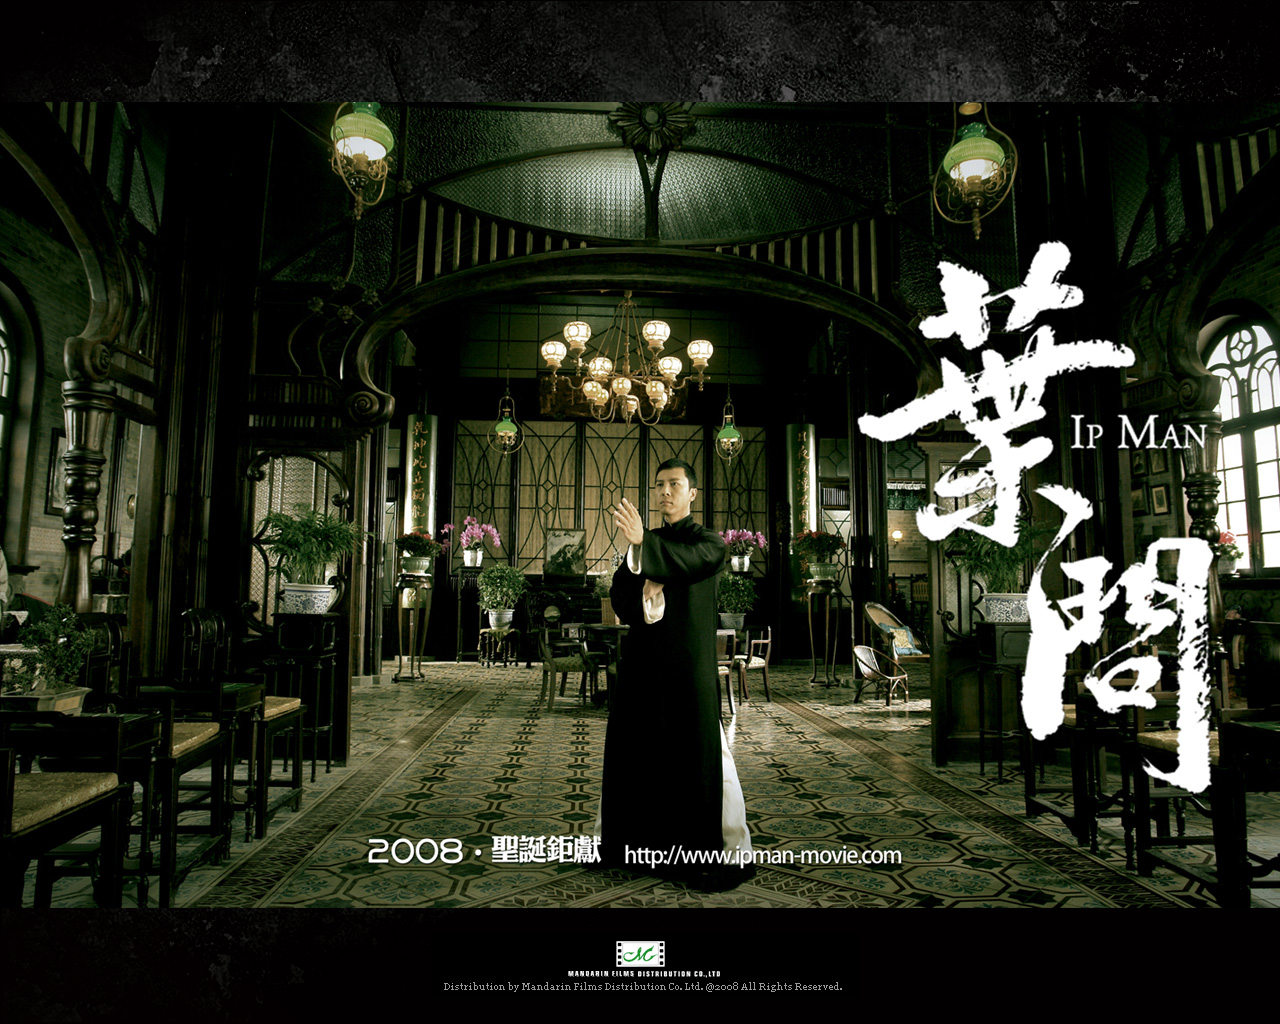 Top High Quality Ip Man Images   Awesome Collection 1280x1024